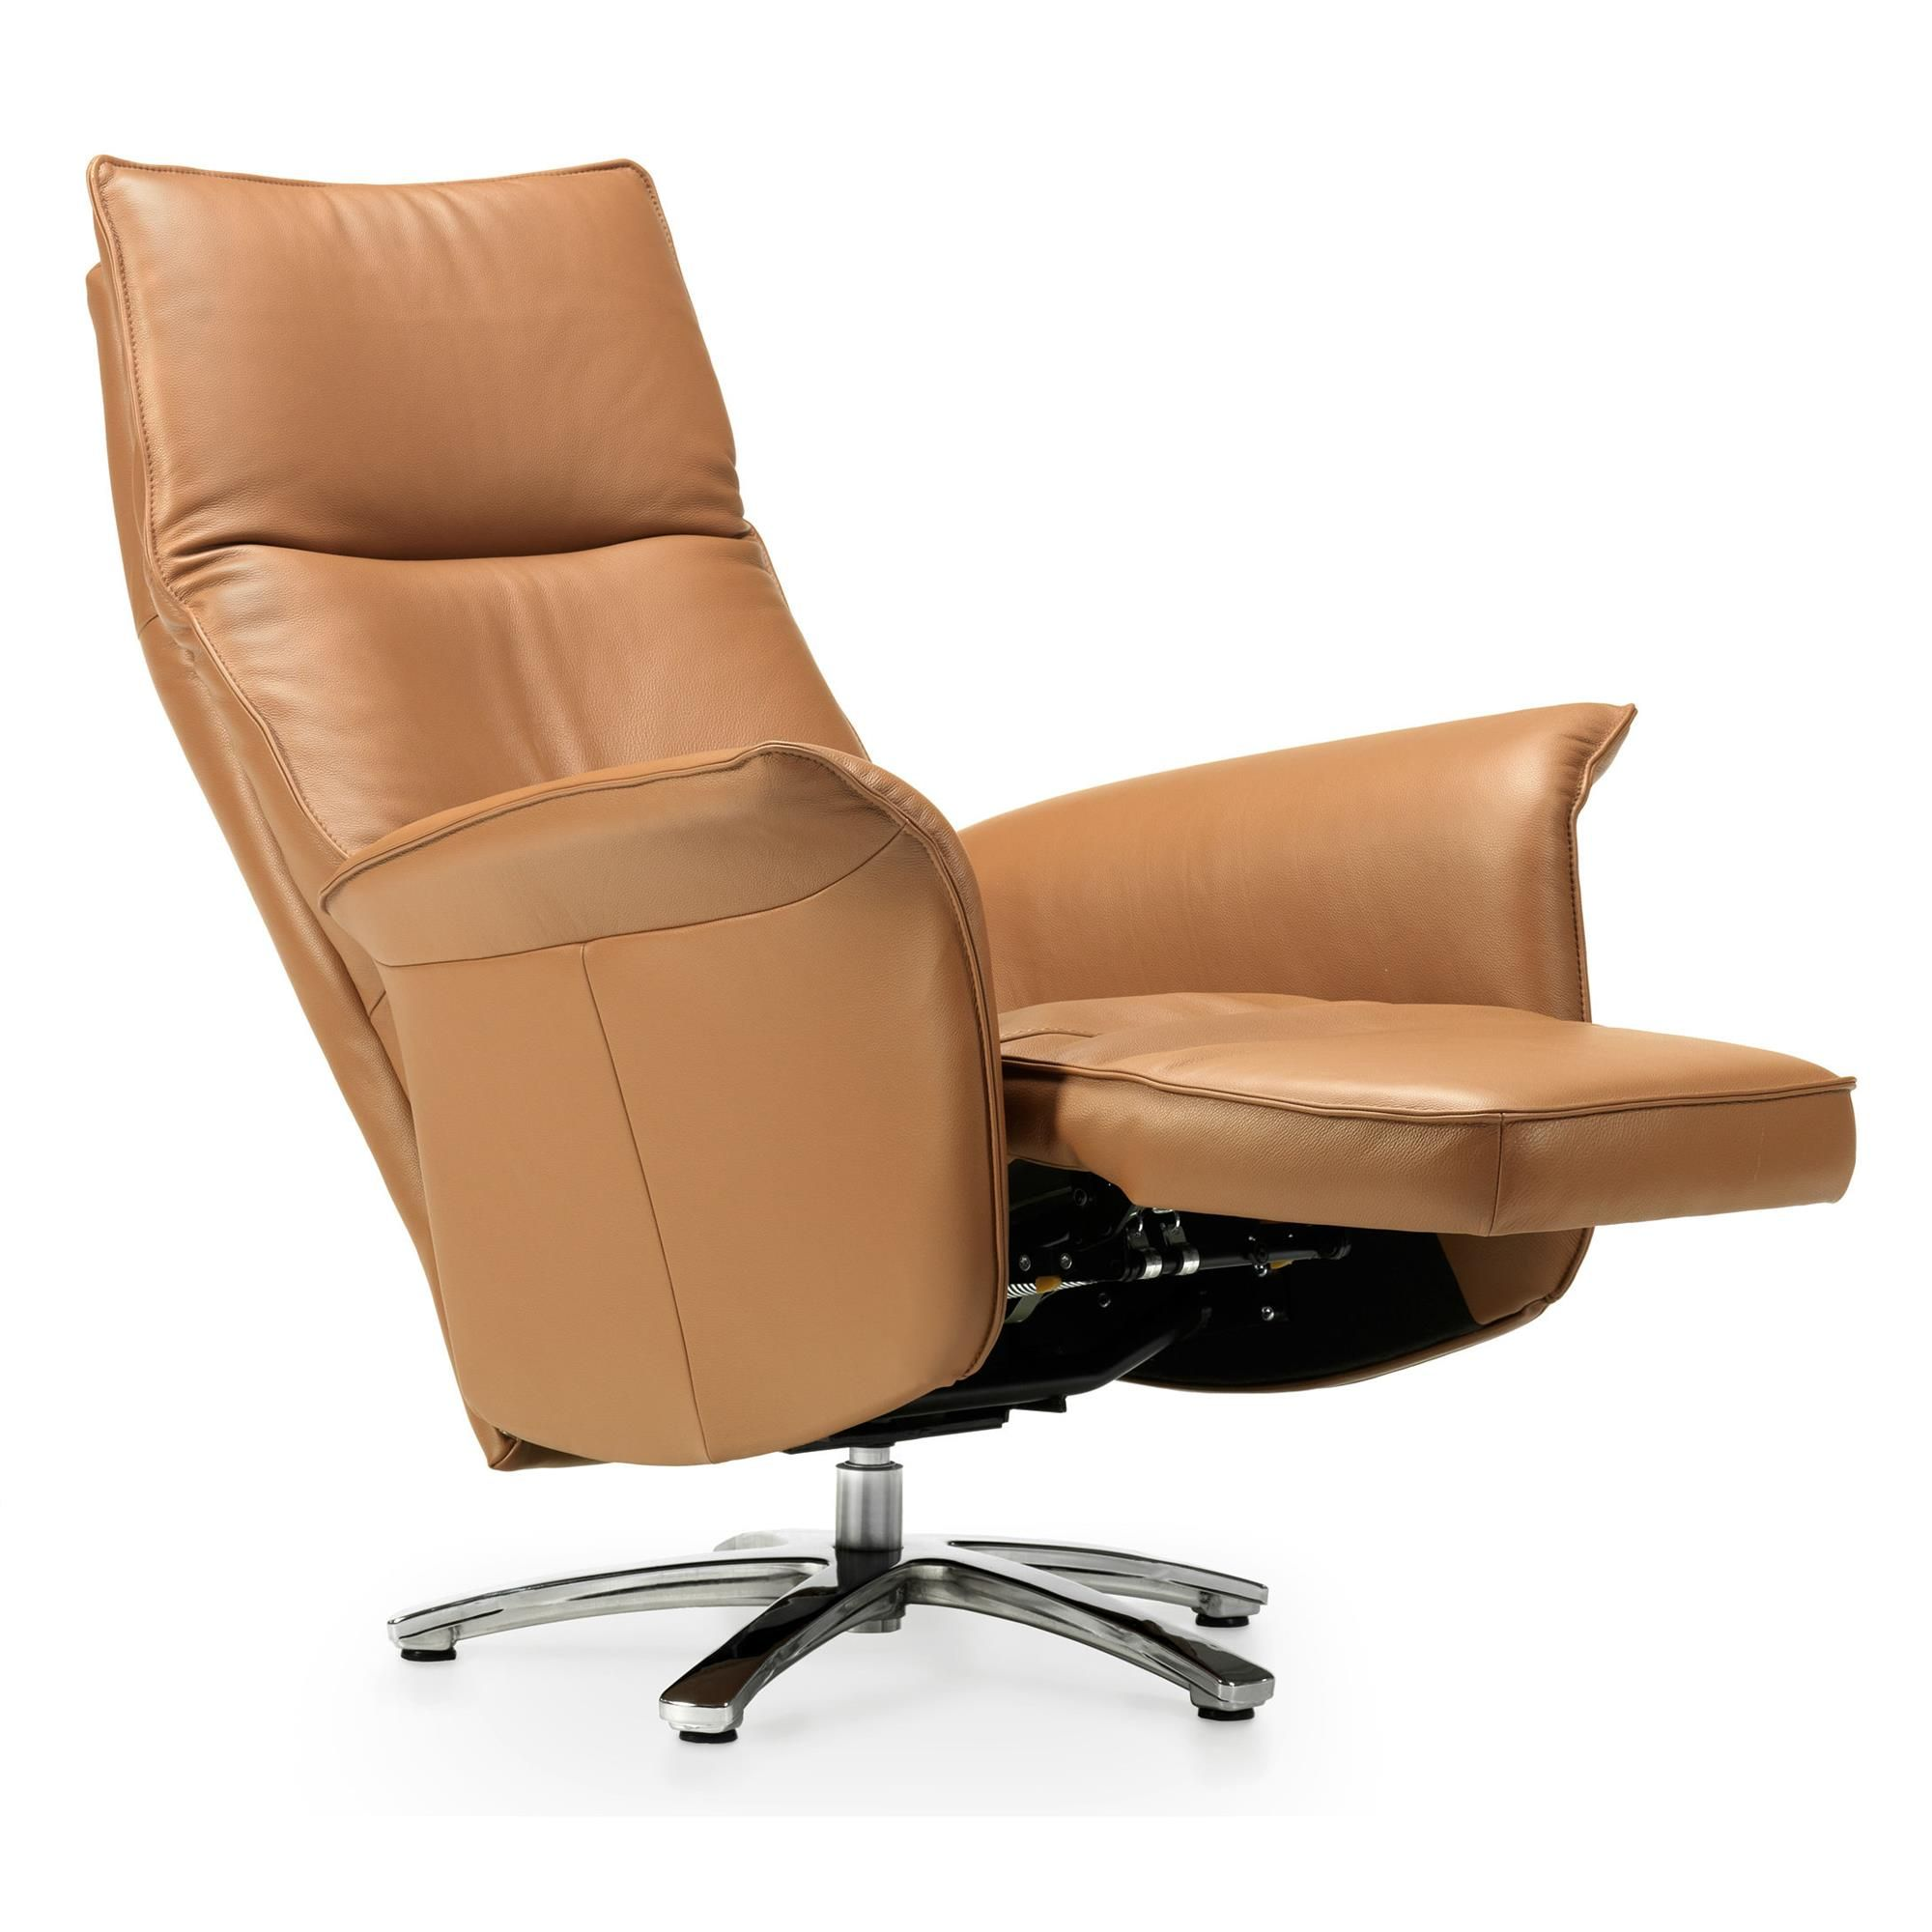 ROM Aloe Swivel Recliner Chair From Queenstreet Carpets